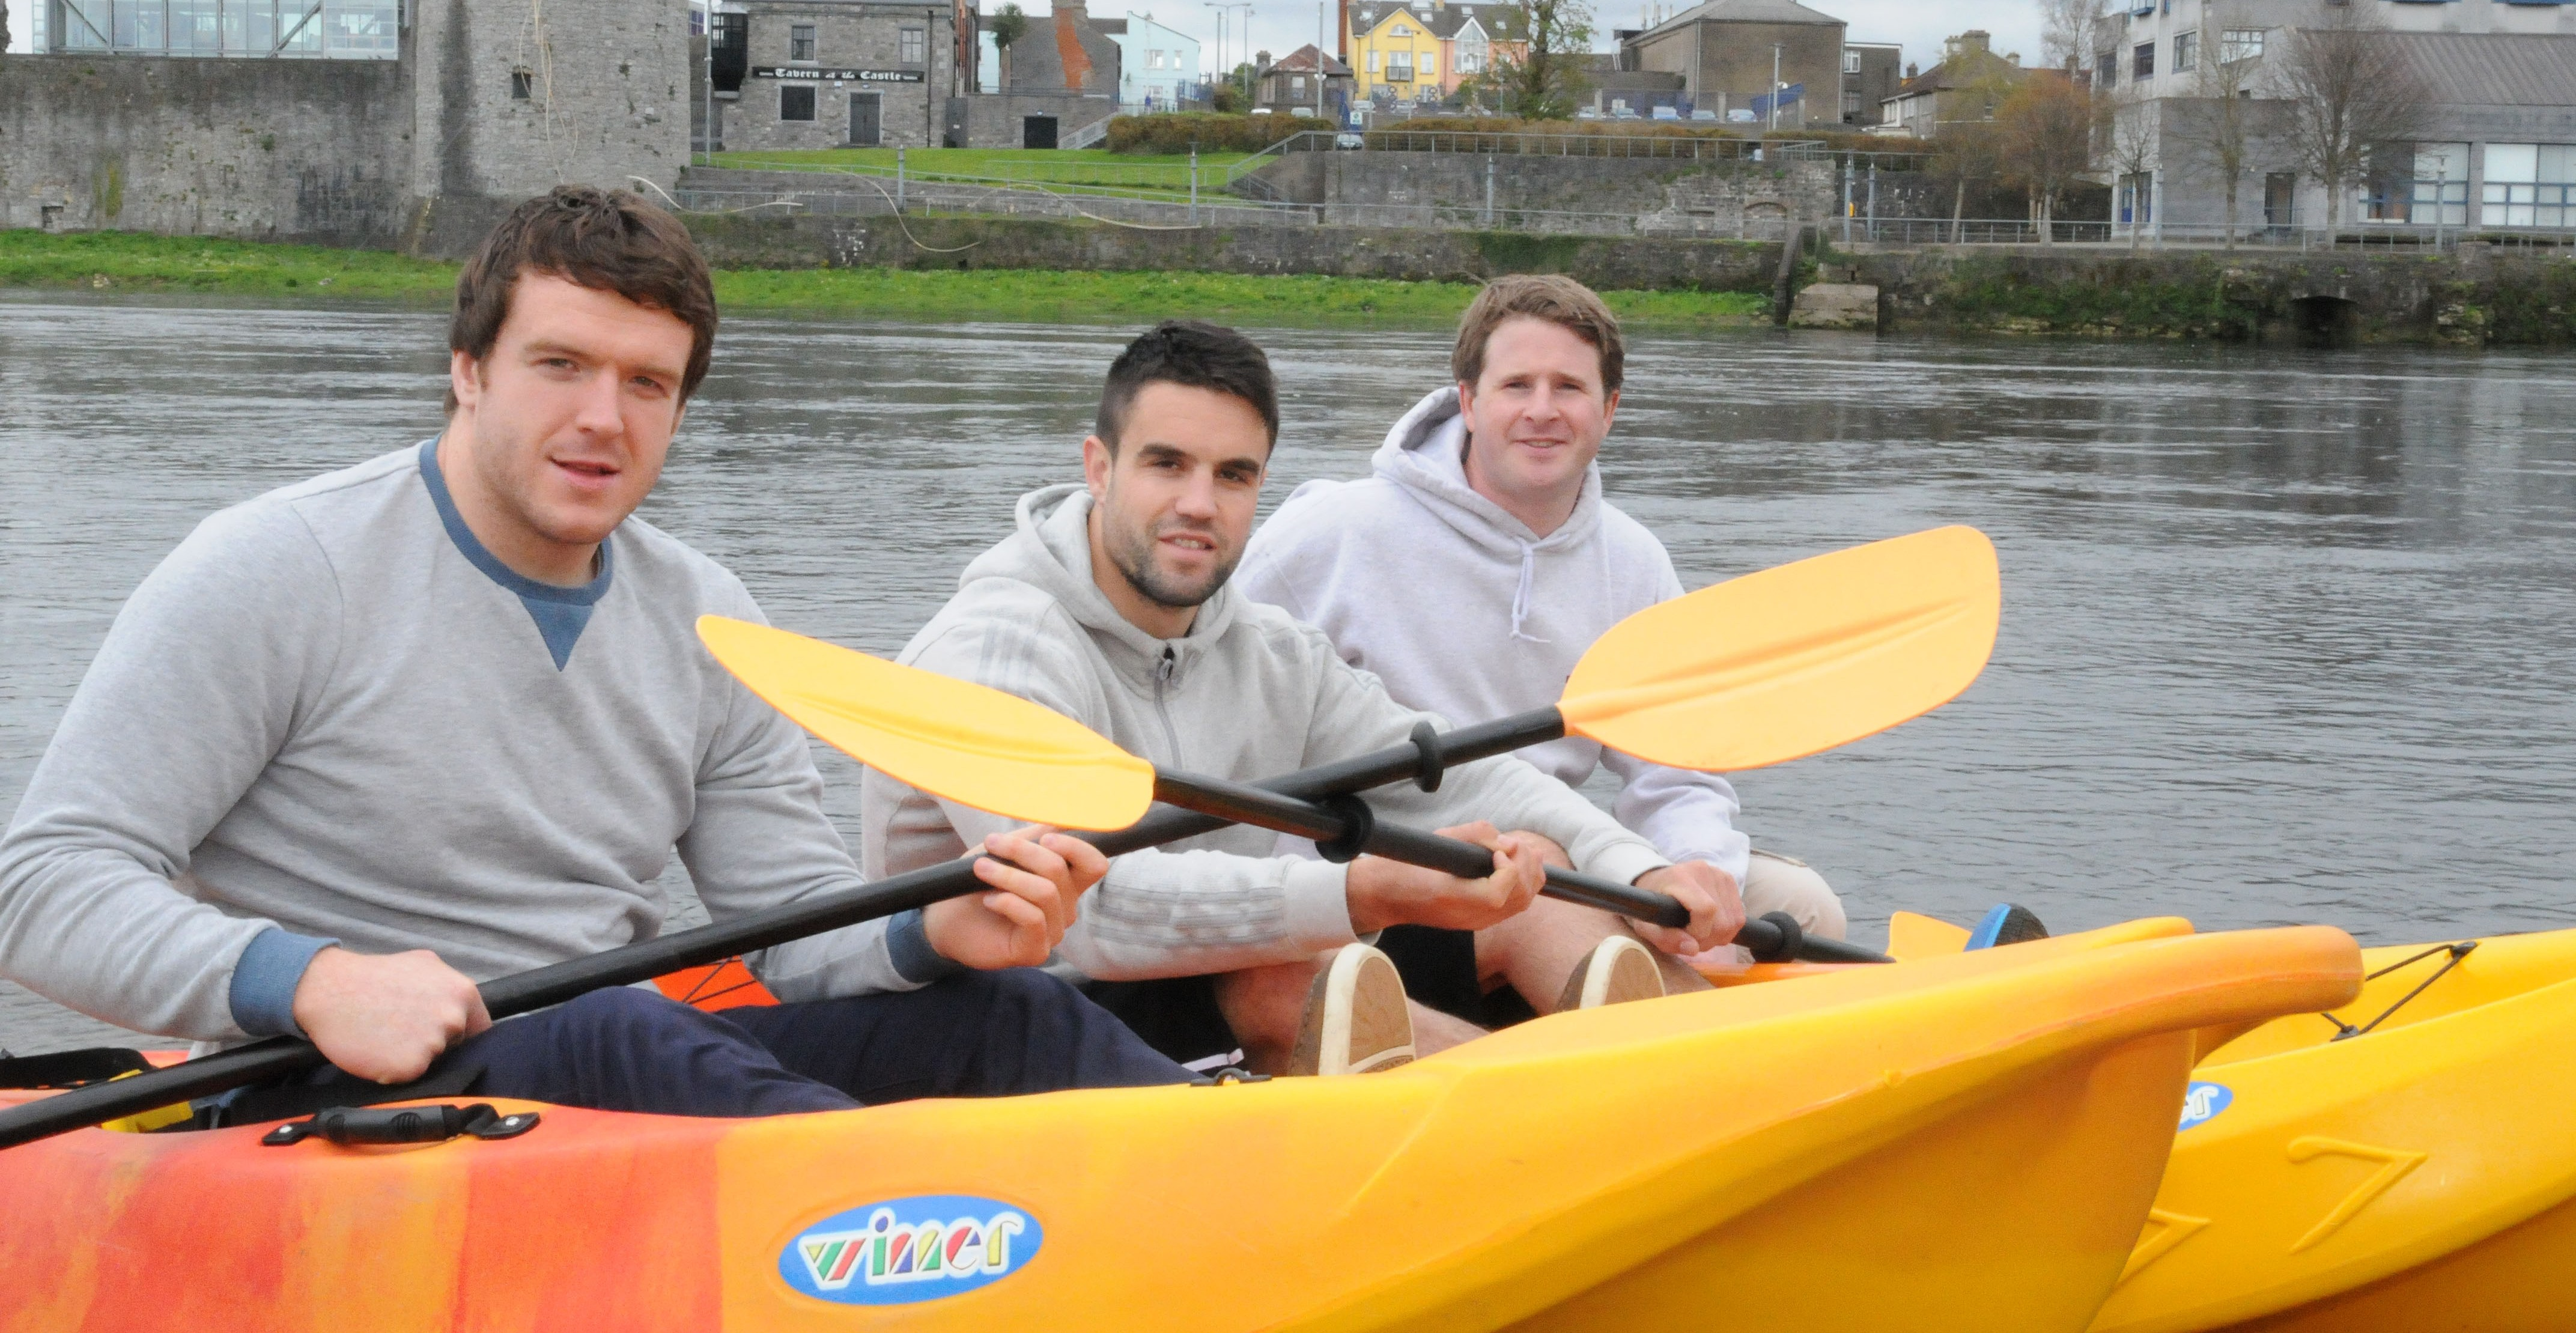 Munster players Mike Sherry, Conor Murray who were Kayaking with Dave Neville of Nevsail watersports info@nevsailwatersports.com